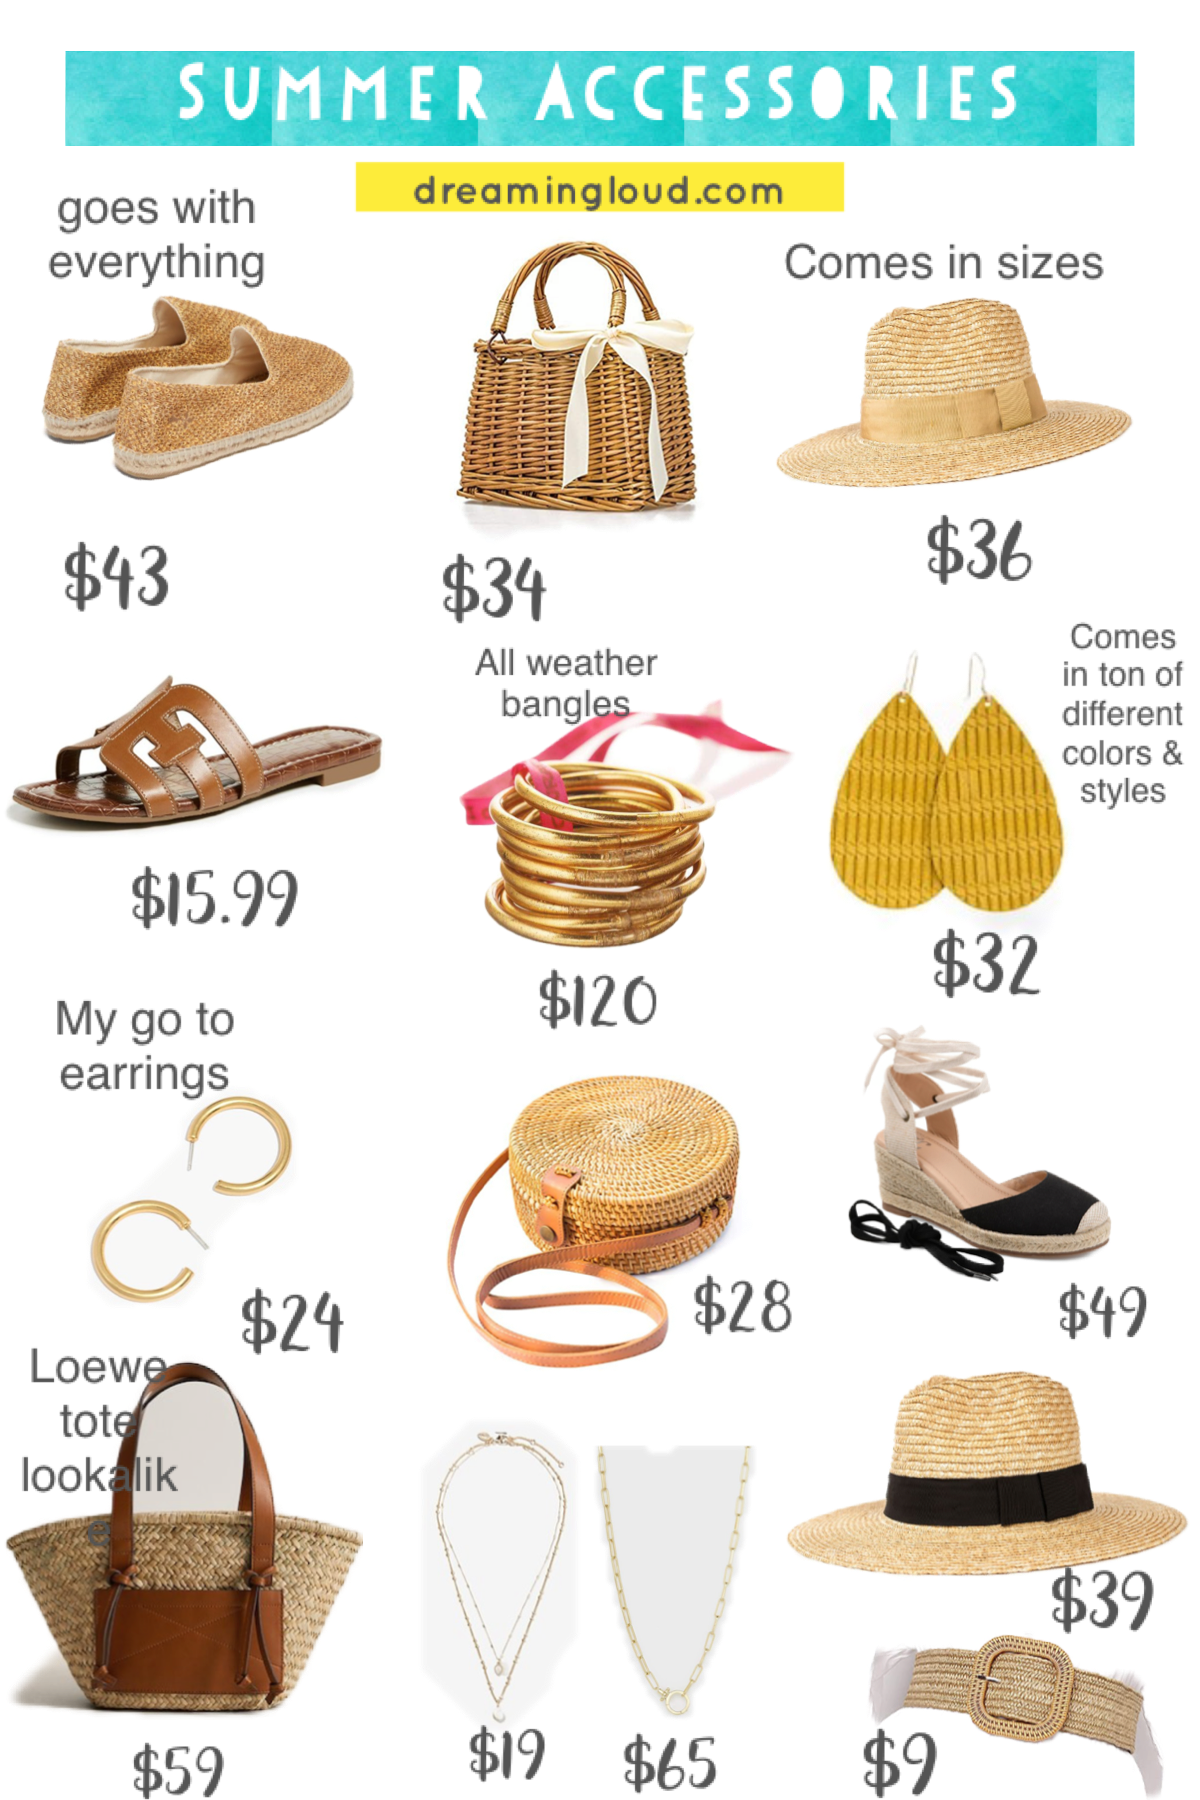 Summer Fashion Accessories by popular Maryland fashion blog, Dreaming Loud: collage image of a pair of MANEBÍ Yucatan woven-raffia espadrilles, Amazon DOKOT Natural Hand-woven Rectangular Wicker Handbag Basket Purse, Joanna Straw Hat BRIXTON, Amazon softome Women's Flat Slide Sandals Cutout Leather Open Toe, Aha All Weather Serenity Prayer Bangles, Nickel + Suede SAFFRON CORD LEATHER EARRINGS, Madewell Chunky Medium Hoop Earrings, Amazon NATURAL NEO Handwoven Round Rattan Bag, Nordstrom Rack JOURNEE Collection Monte Wedge Espadrille, Mango MUM & ME Double strap basket, Express Two Row Cubic Zirconia Pearl Drop Necklace, Gorjana Two Row Cubic Zirconia Pearl Drop Necklace, and Amazon Brixton Women's Joanna Straw Sun Hat.